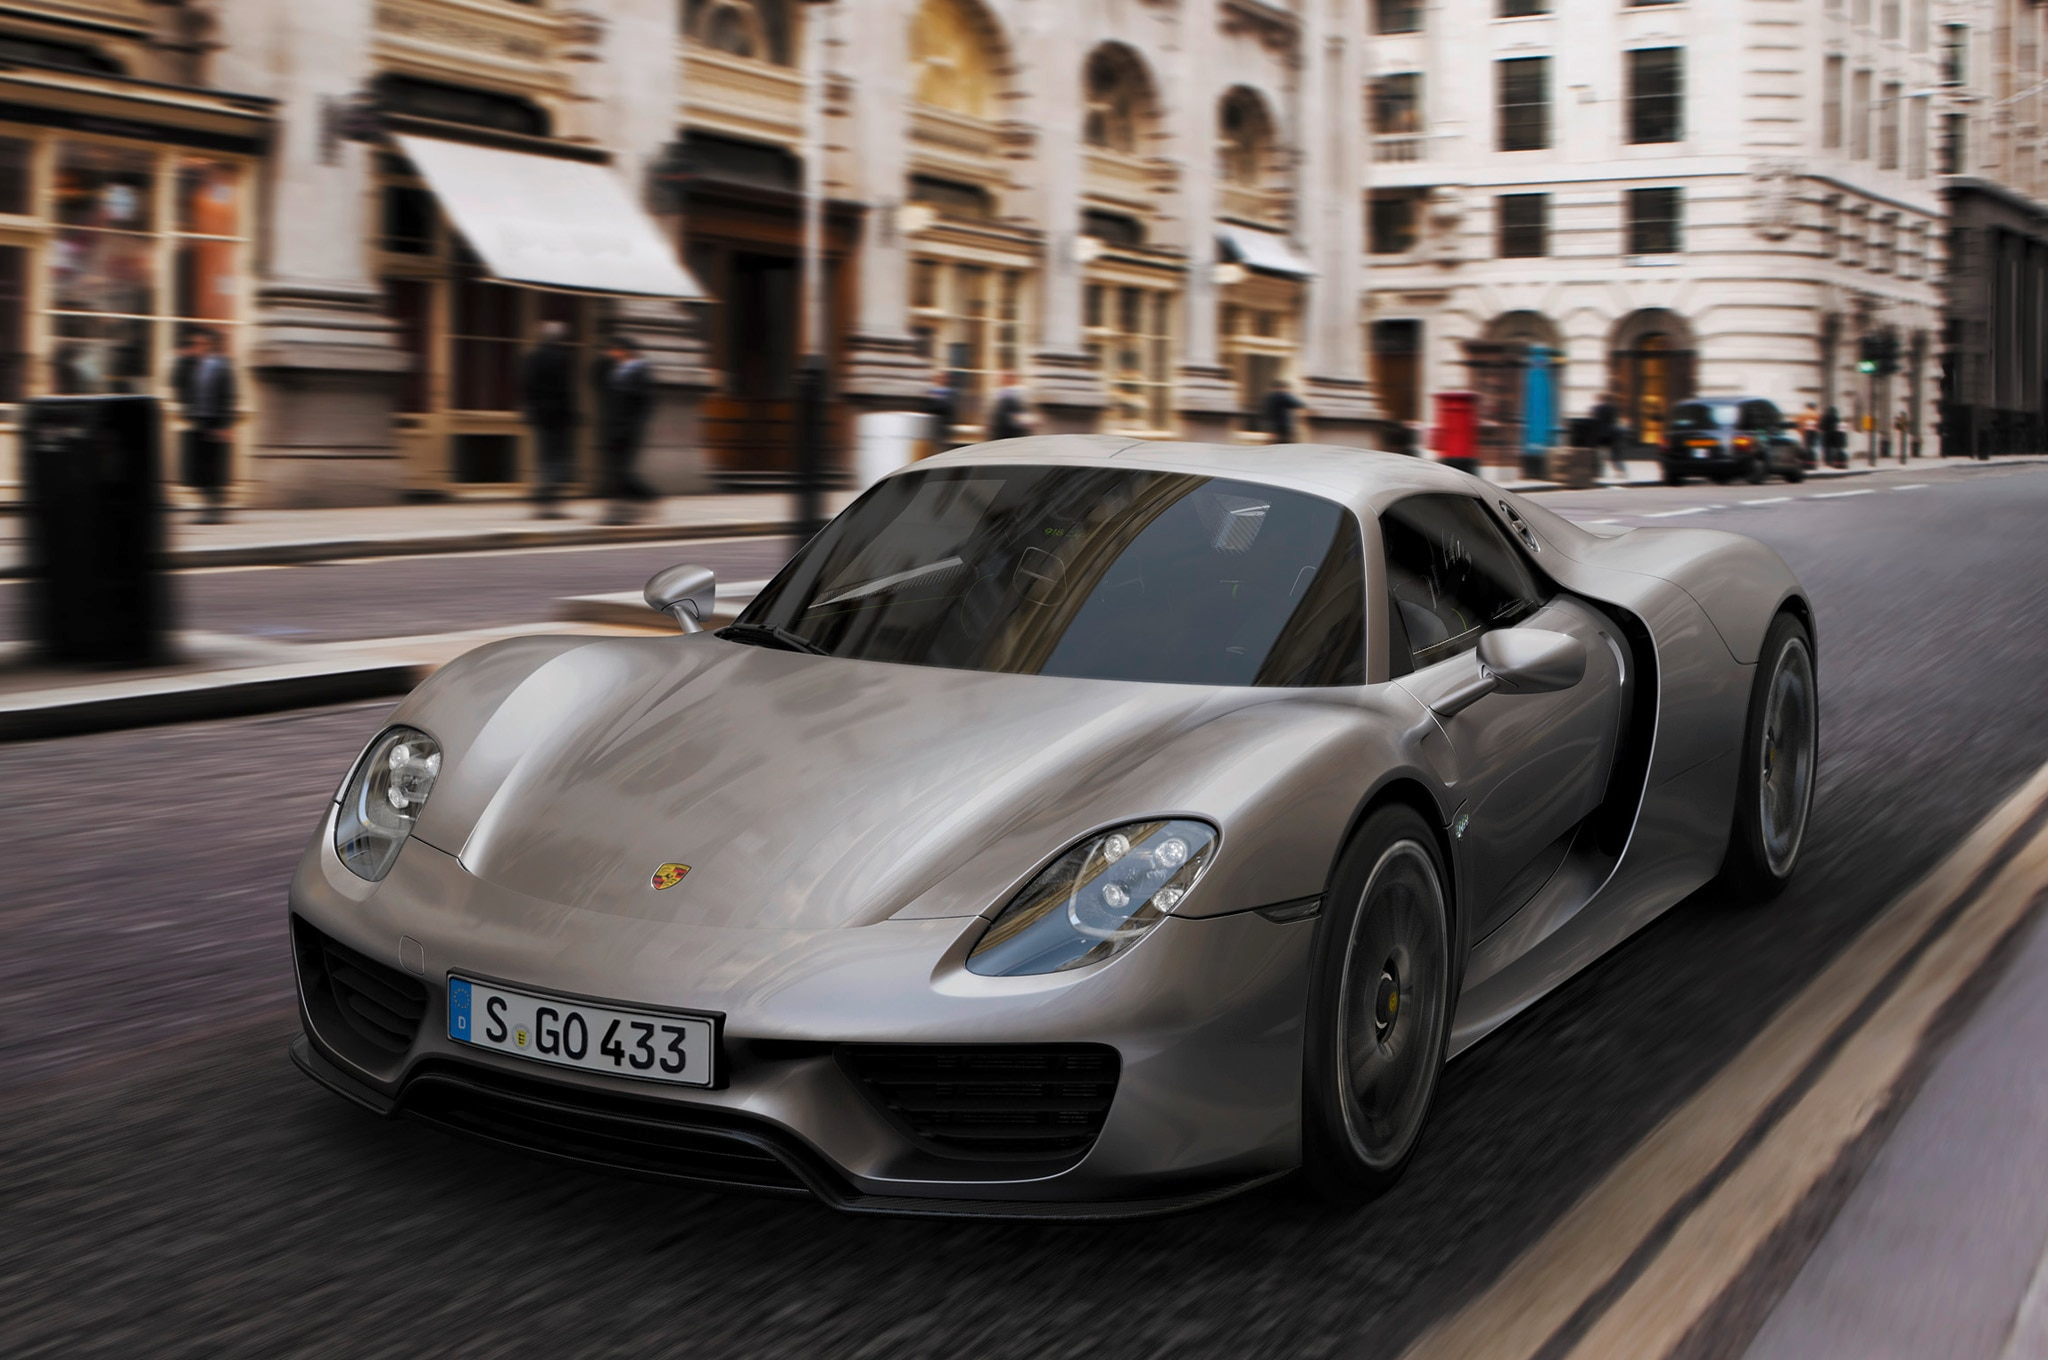 2015-porsche-918-spyder-front-three-quarters-2 Fabulous How Much Does the Porsche 918 Spyder Concept Cost In Real Racing 3 Cars Trend